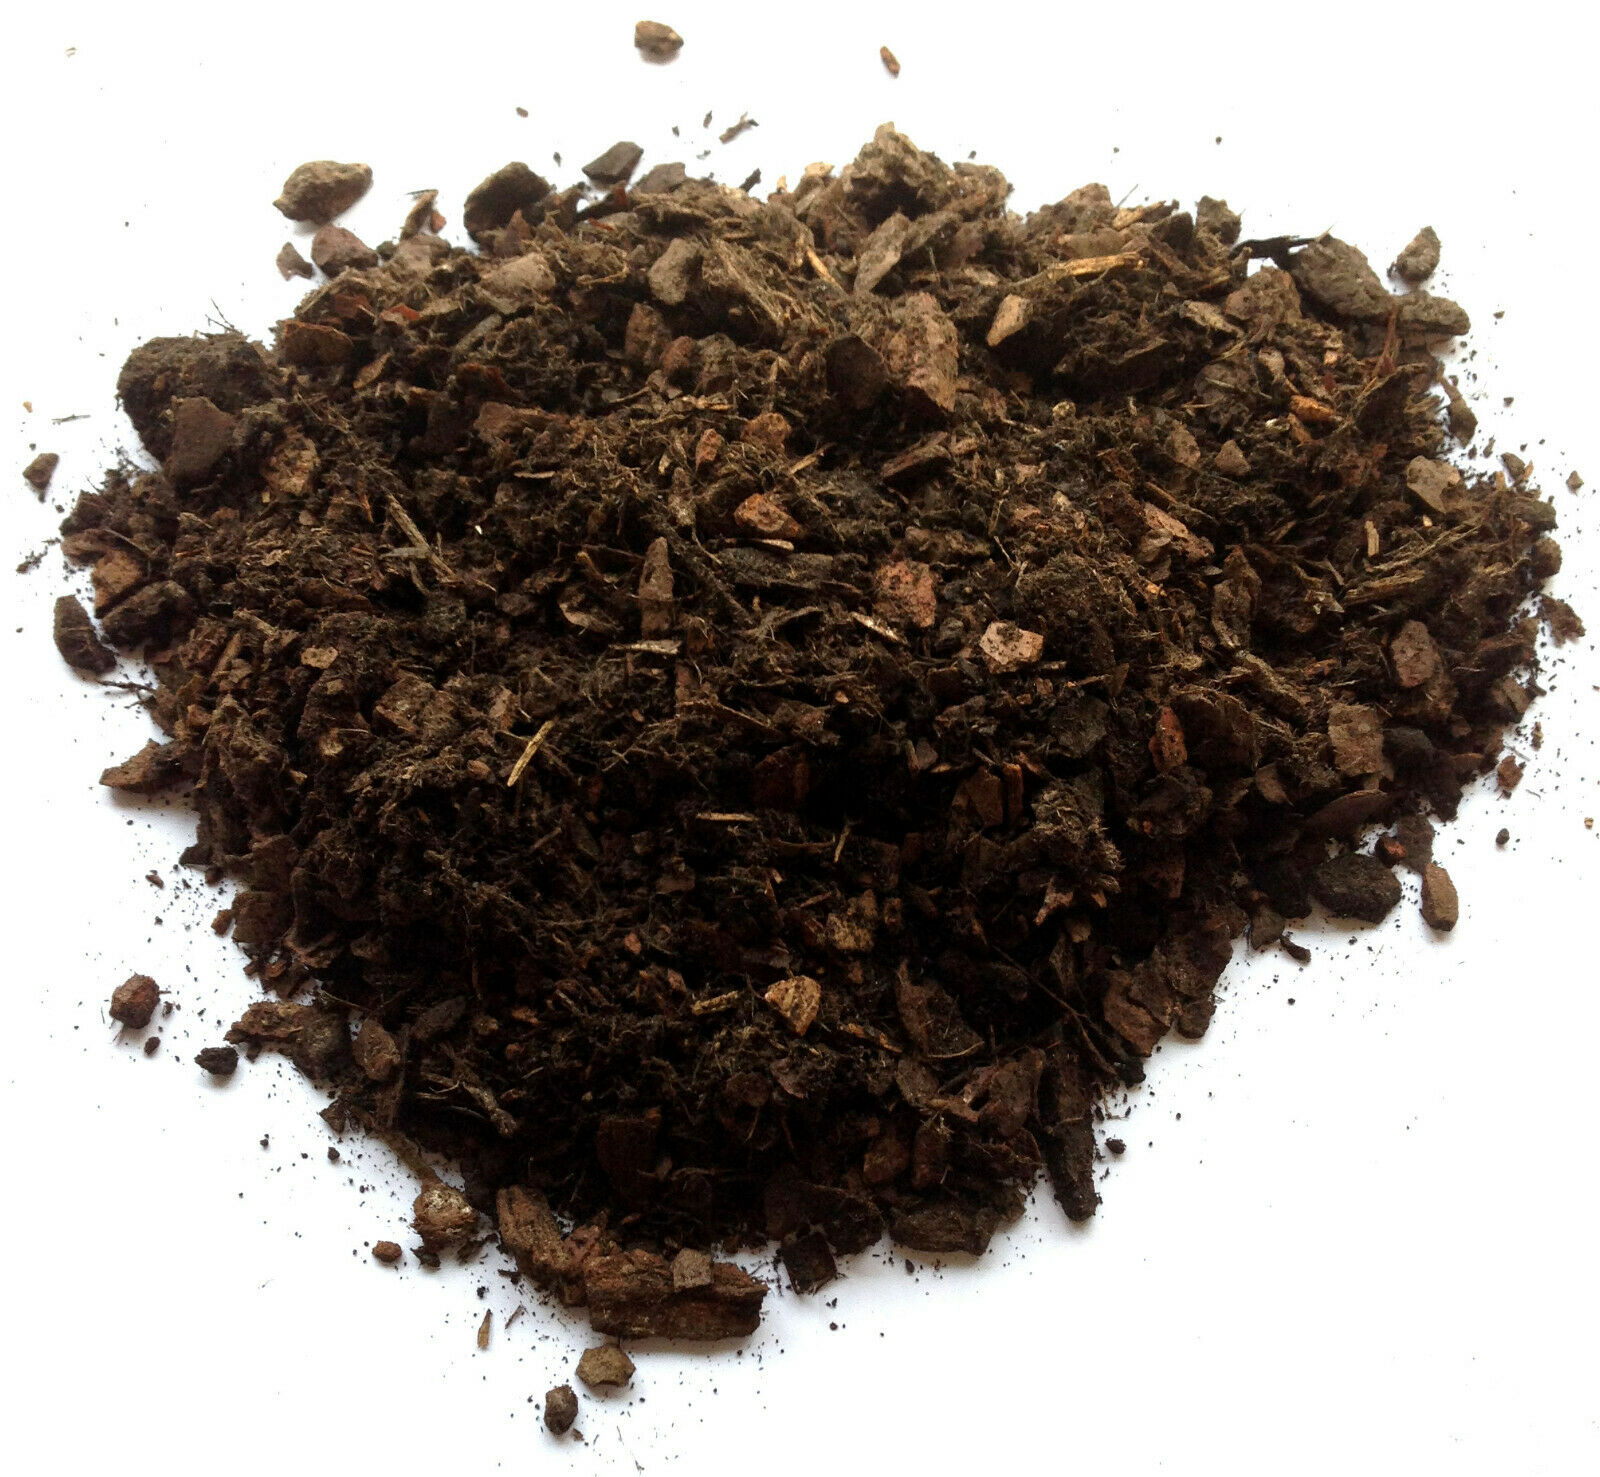 450g ORCHID COMPOST Miracle Gro To Repot & Top Up Your Orchid